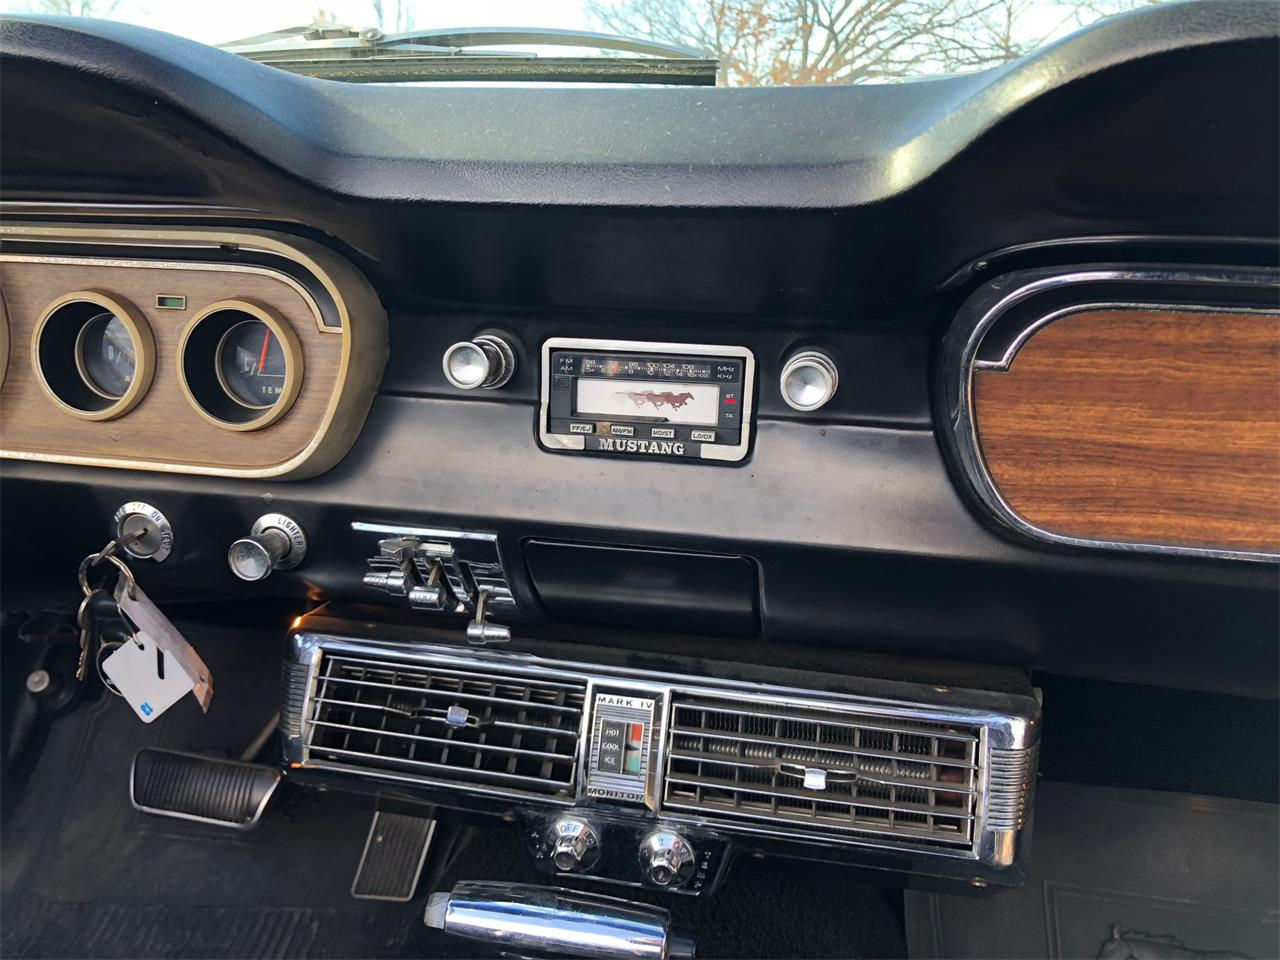 Large Picture of Classic 1965 Mustang located in Nocona Texas Auction Vehicle - N8T8